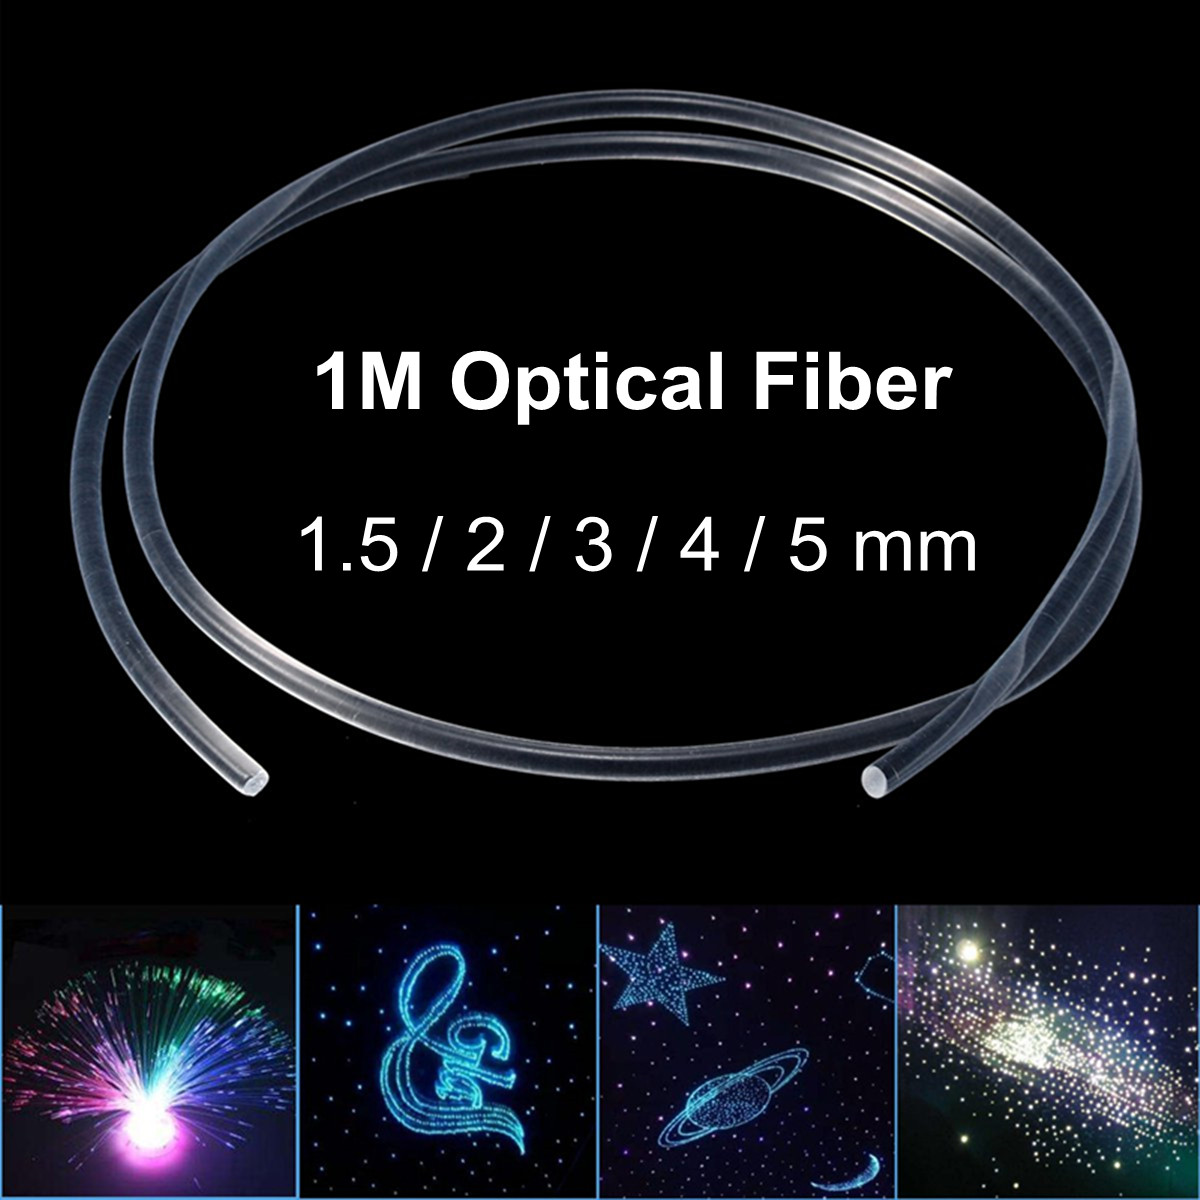 Side Glow Optic Fiber Light Car Indoor Opitcal Cable Ceiling Lighting Night Lights 1.5-5mm Christmas Party Decoration